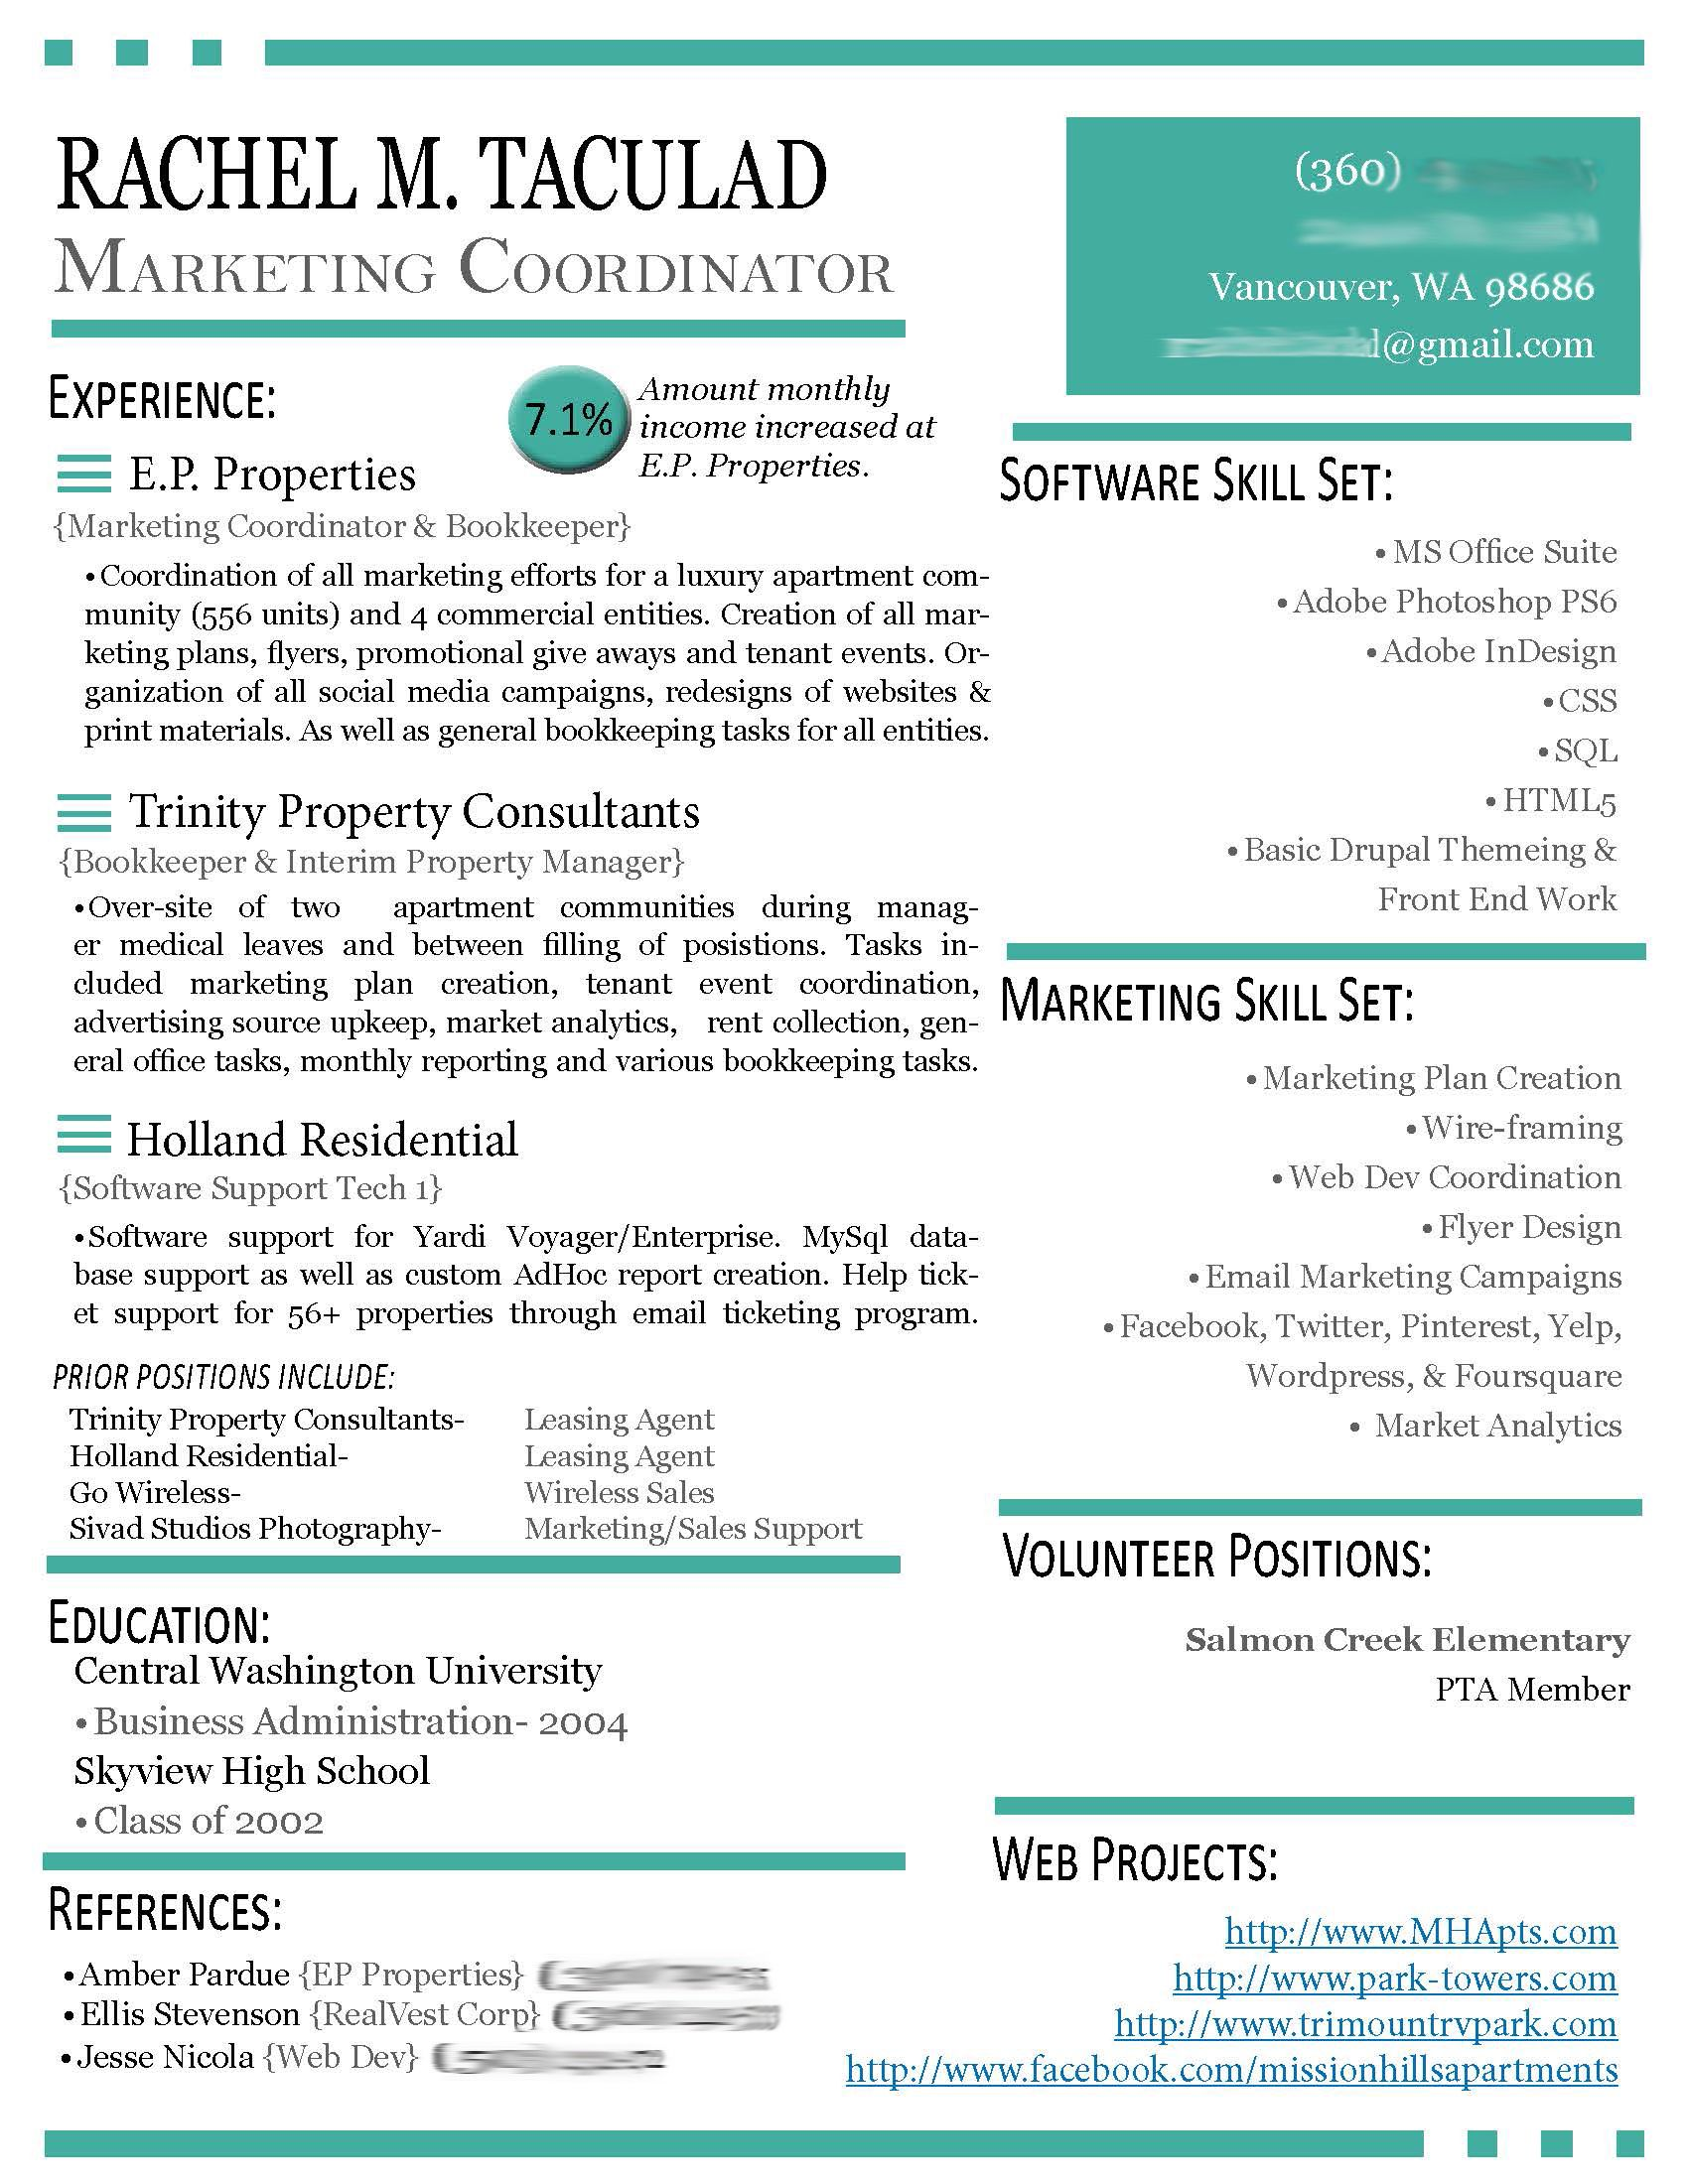 Opposenewapstandardsus  Remarkable  Images About Work Stuff On Pinterest  Resume Professional  With Great  Images About Work Stuff On Pinterest  Resume Professional Resume Template And Resume Templates With Awesome Cpa Resume Sample Also Do You Need A Cover Letter For Your Resume In Addition Standard Resume Font And List Of Verbs For Resume As Well As How To Create A Resume Online Additionally A Proper Resume From Pinterestcom With Opposenewapstandardsus  Great  Images About Work Stuff On Pinterest  Resume Professional  With Awesome  Images About Work Stuff On Pinterest  Resume Professional Resume Template And Resume Templates And Remarkable Cpa Resume Sample Also Do You Need A Cover Letter For Your Resume In Addition Standard Resume Font From Pinterestcom